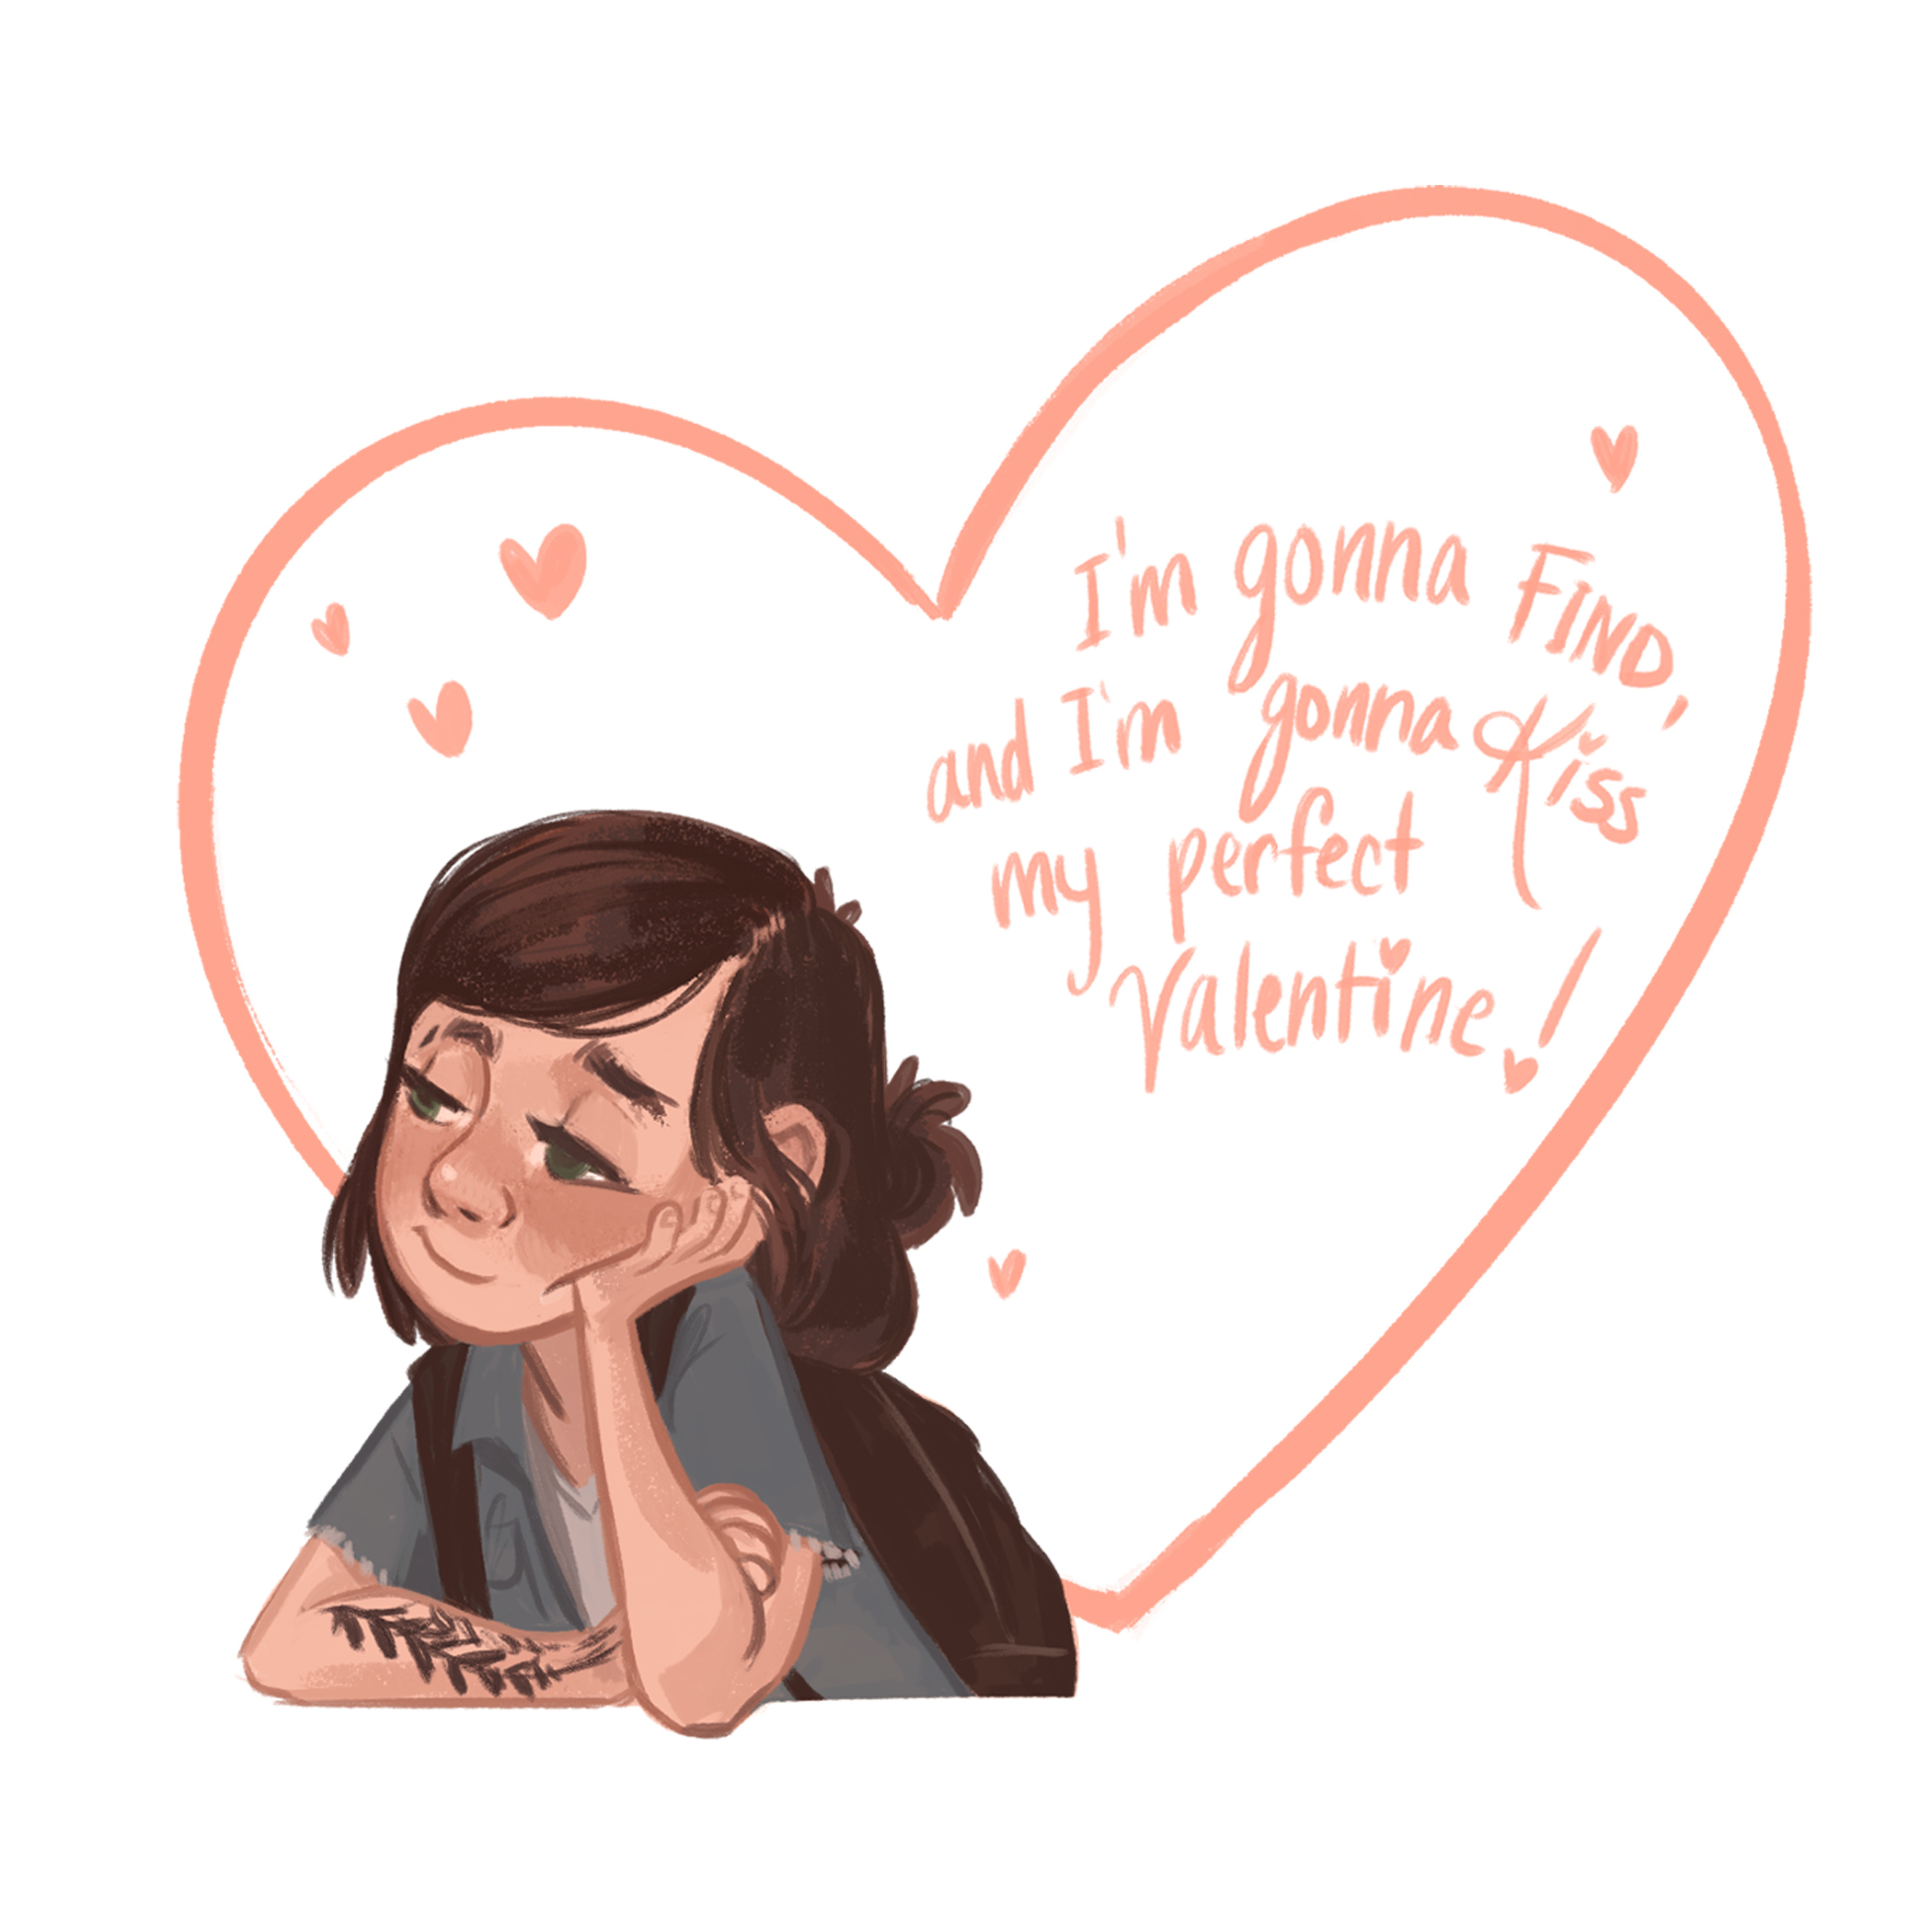 From everyone here at the studio, Happy Valentine's Day!